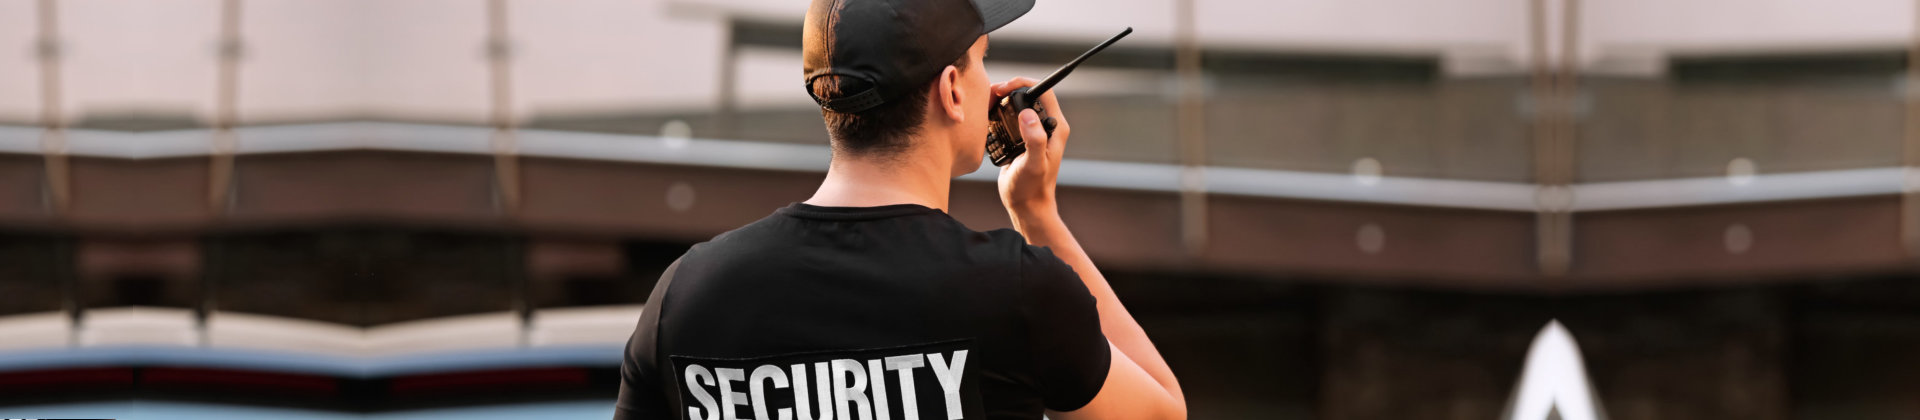 security guard at rear view wearing black cap, t-shirt and holding walkie-talkie